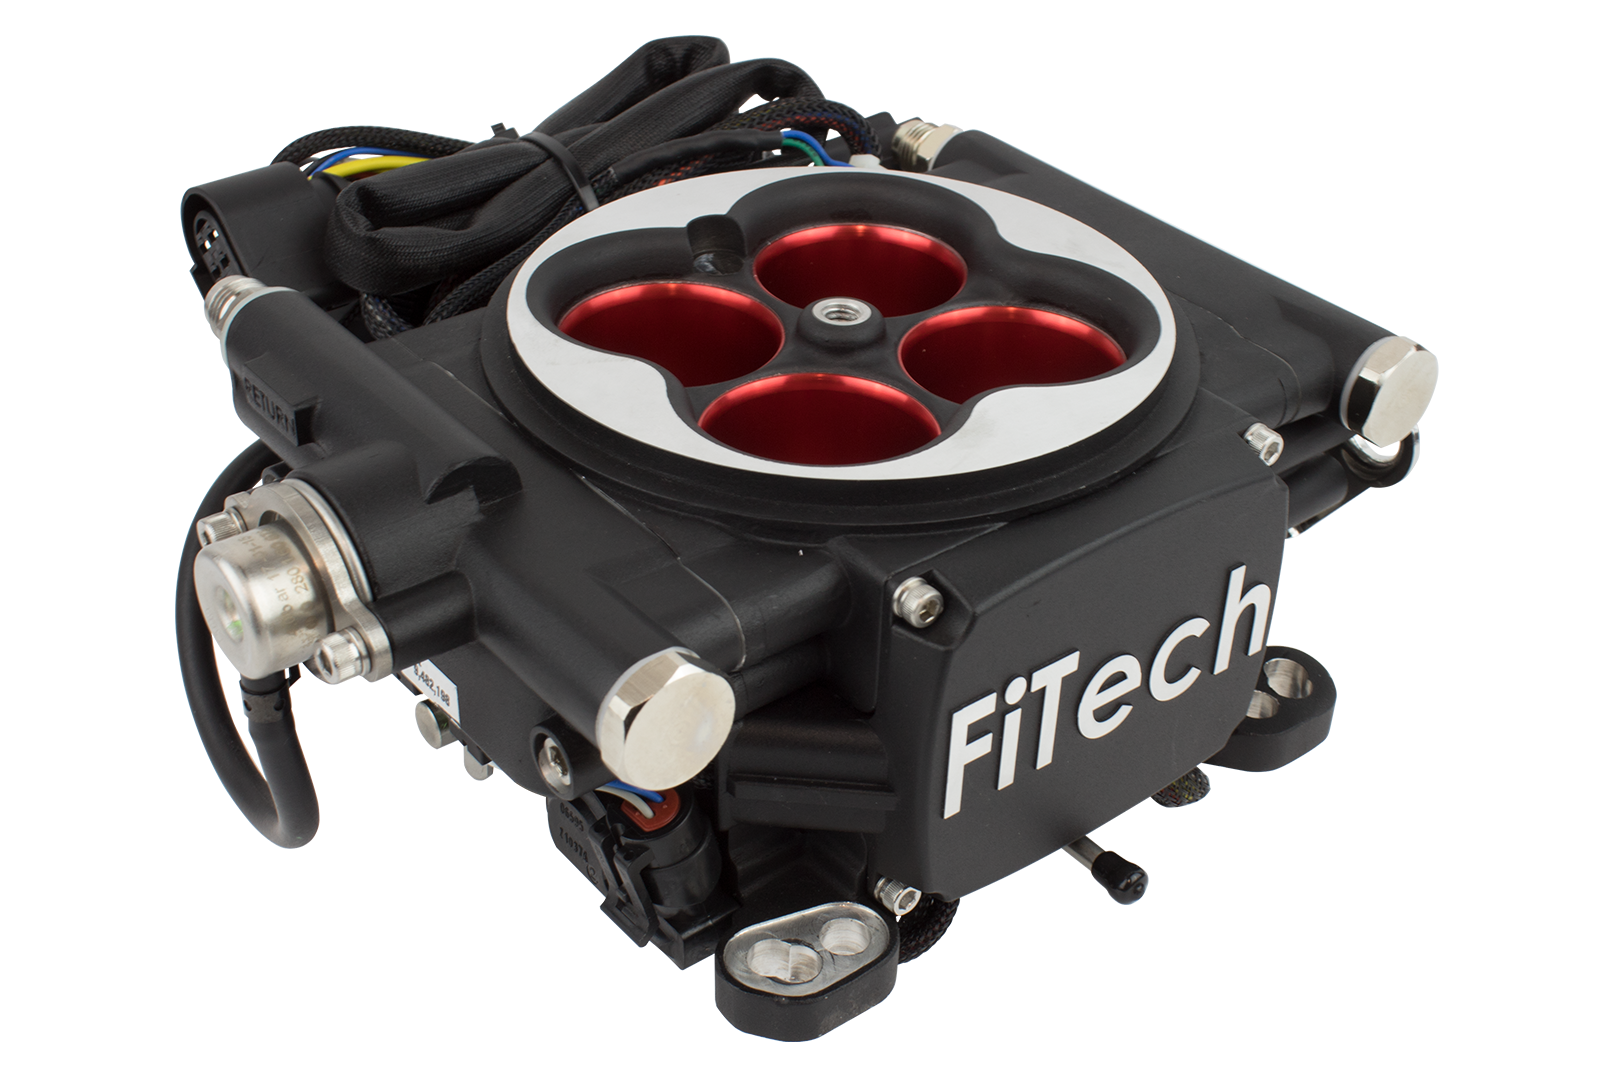 FiTech 30004 Go EFI 4 Power Adder Matte Black 600HP